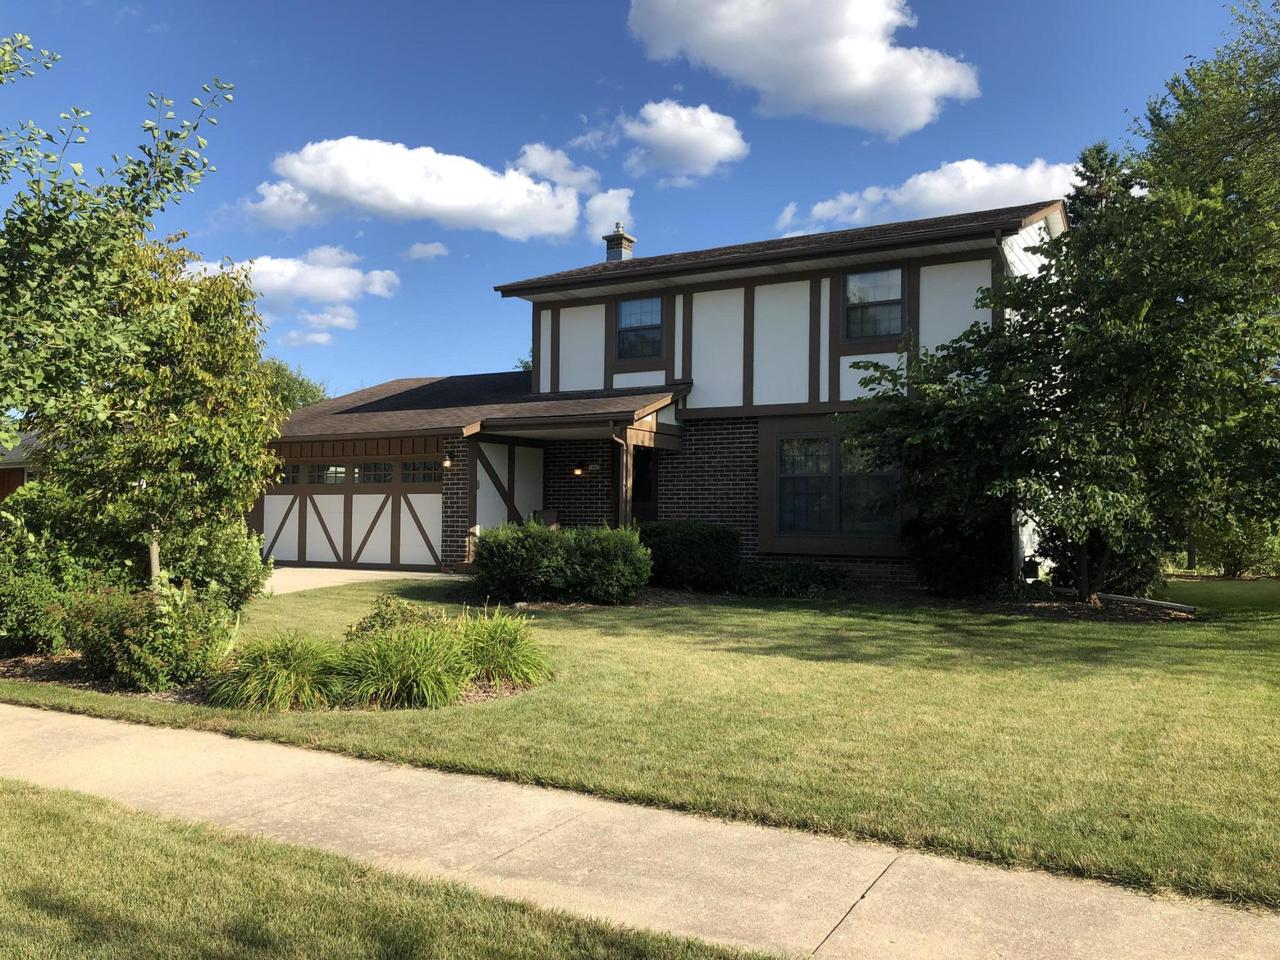 WOW! Prepare to be impressed!  This well-cared for colonial is on a FANTASTIC lot in the Village of Grafton.  This one-owner home will give you your own access to a shared but private pond, providing you and your family year-round fun!  Bathrooms and Kitchen have been completely updated, and both the dinette and full bath are equipped with heated ceramic tile!  The tiered flower beds in the backyard lead to a covered pergola overlooking Manchester Pond.  Make sure to check out the list of updates and features, and make your appointment today to see all that this home has to offer!